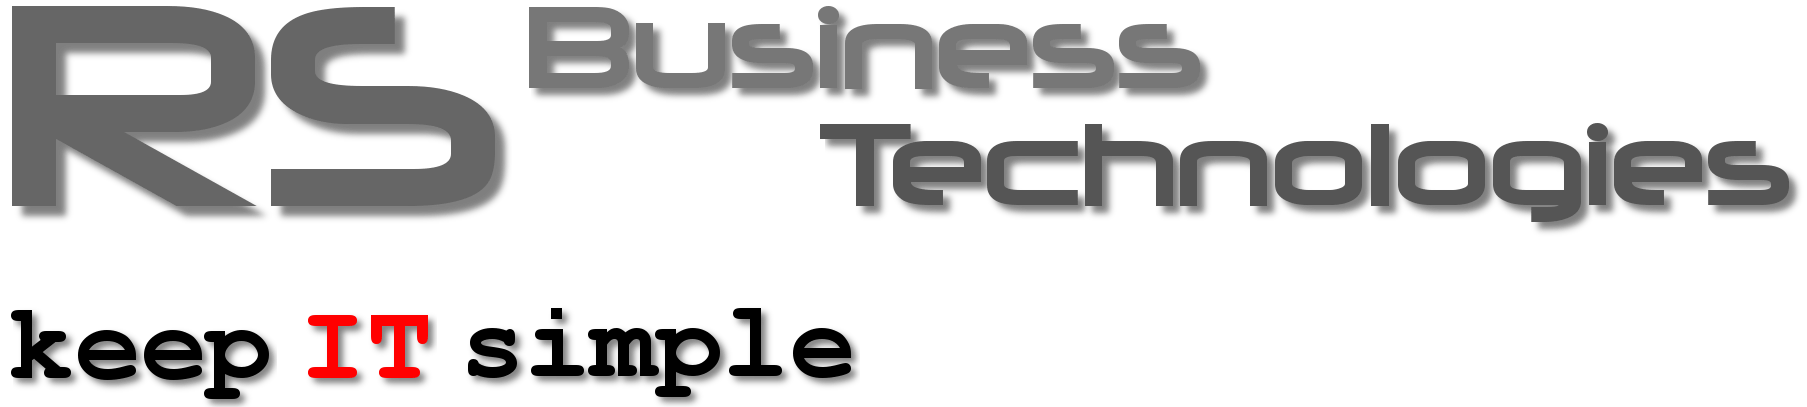 RS Business Technologies GmbH